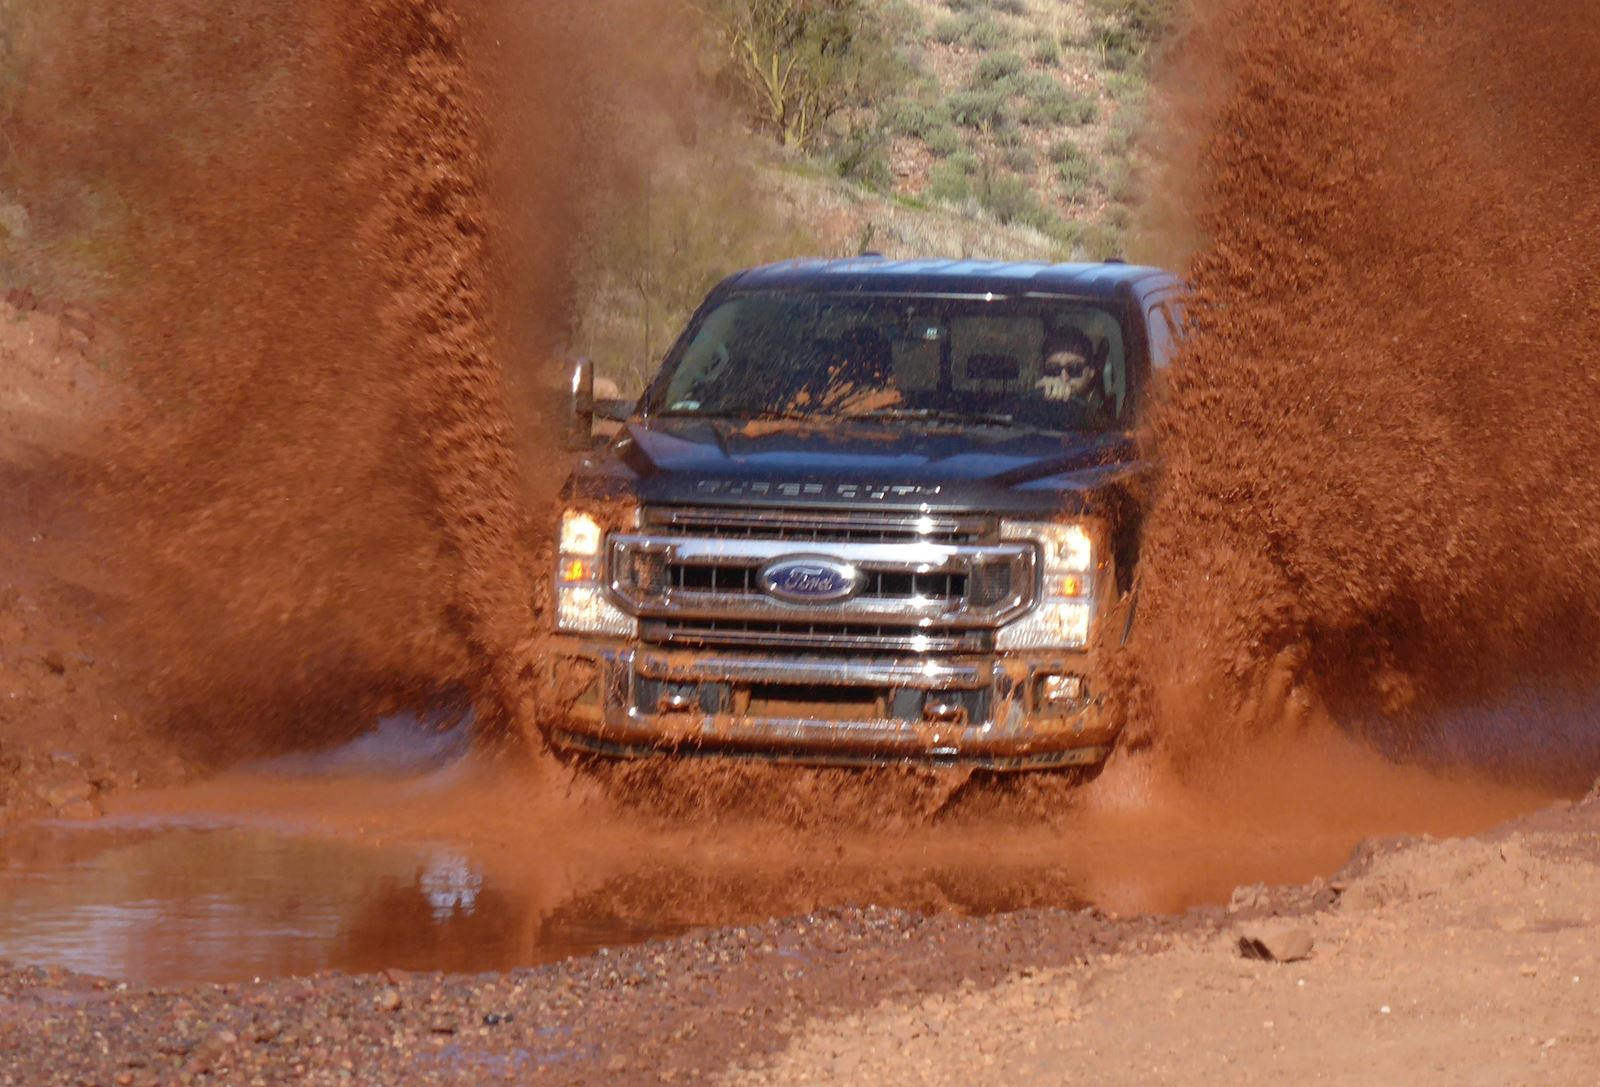 2020 Ford F-250 Super Duty water fording capability